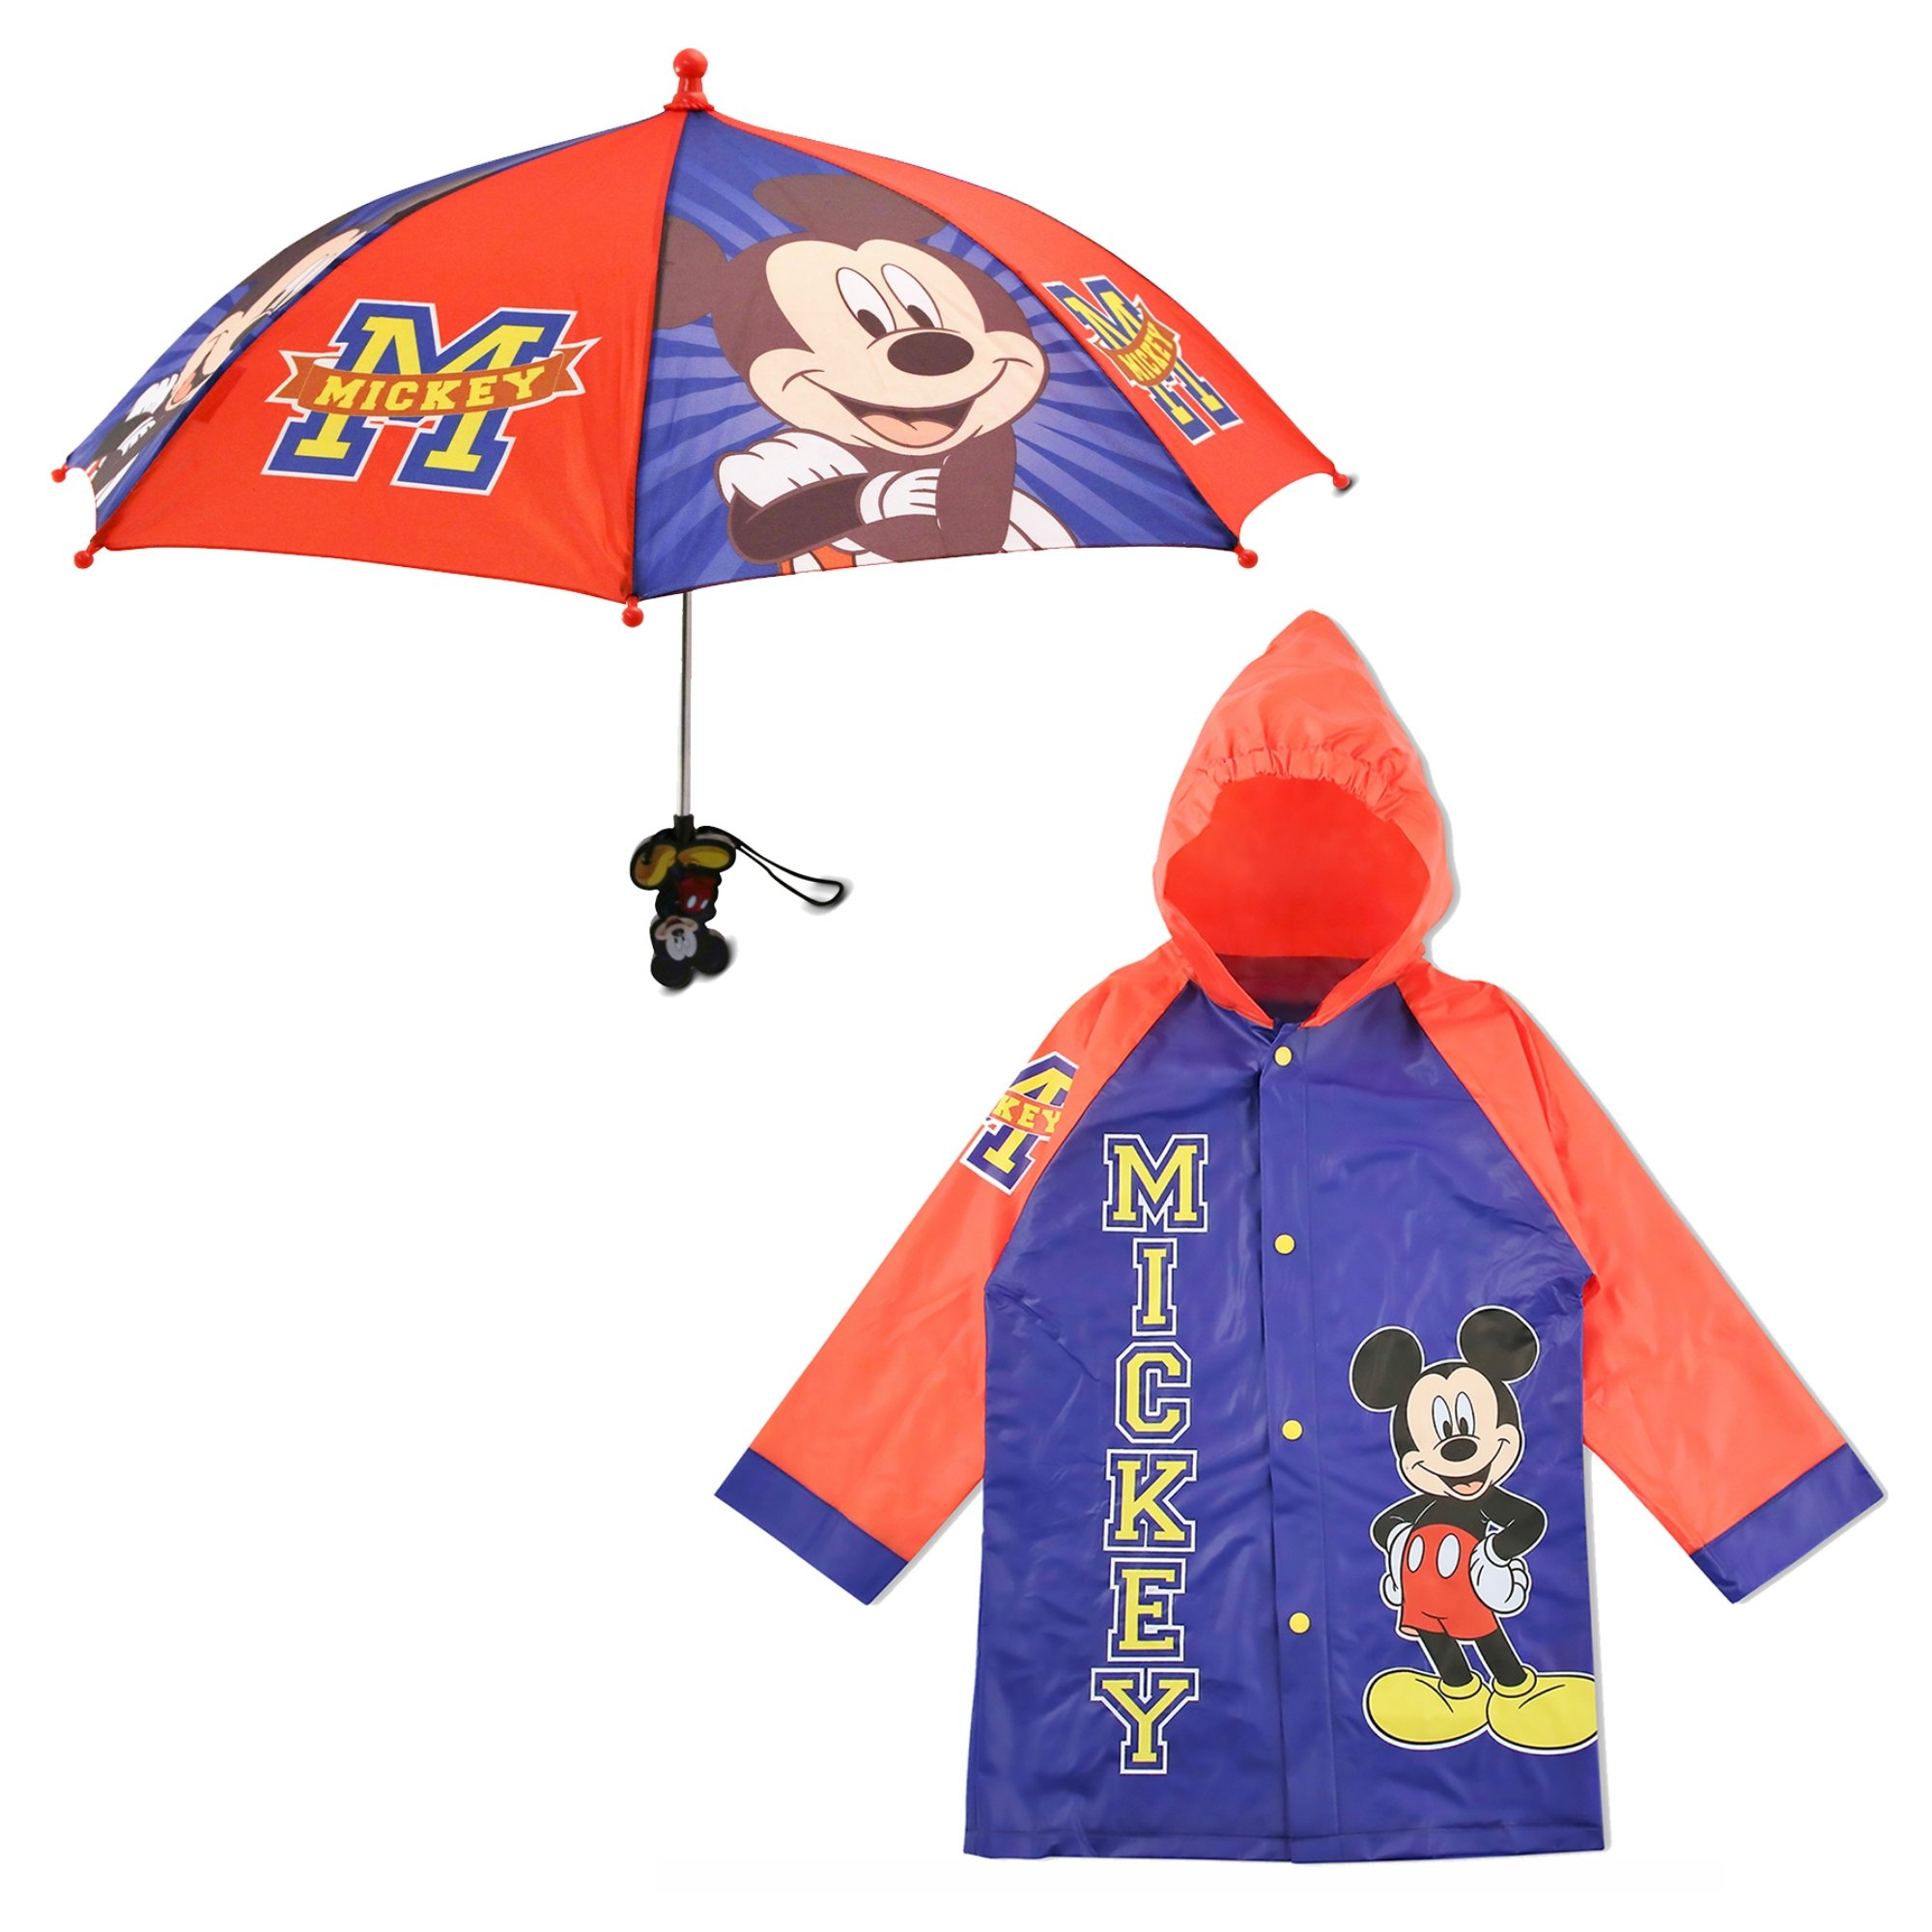 Disney Little Boy's Mickey Mouse Slicker and Umbrella Rainwear Set Blue/Red Age 2-3